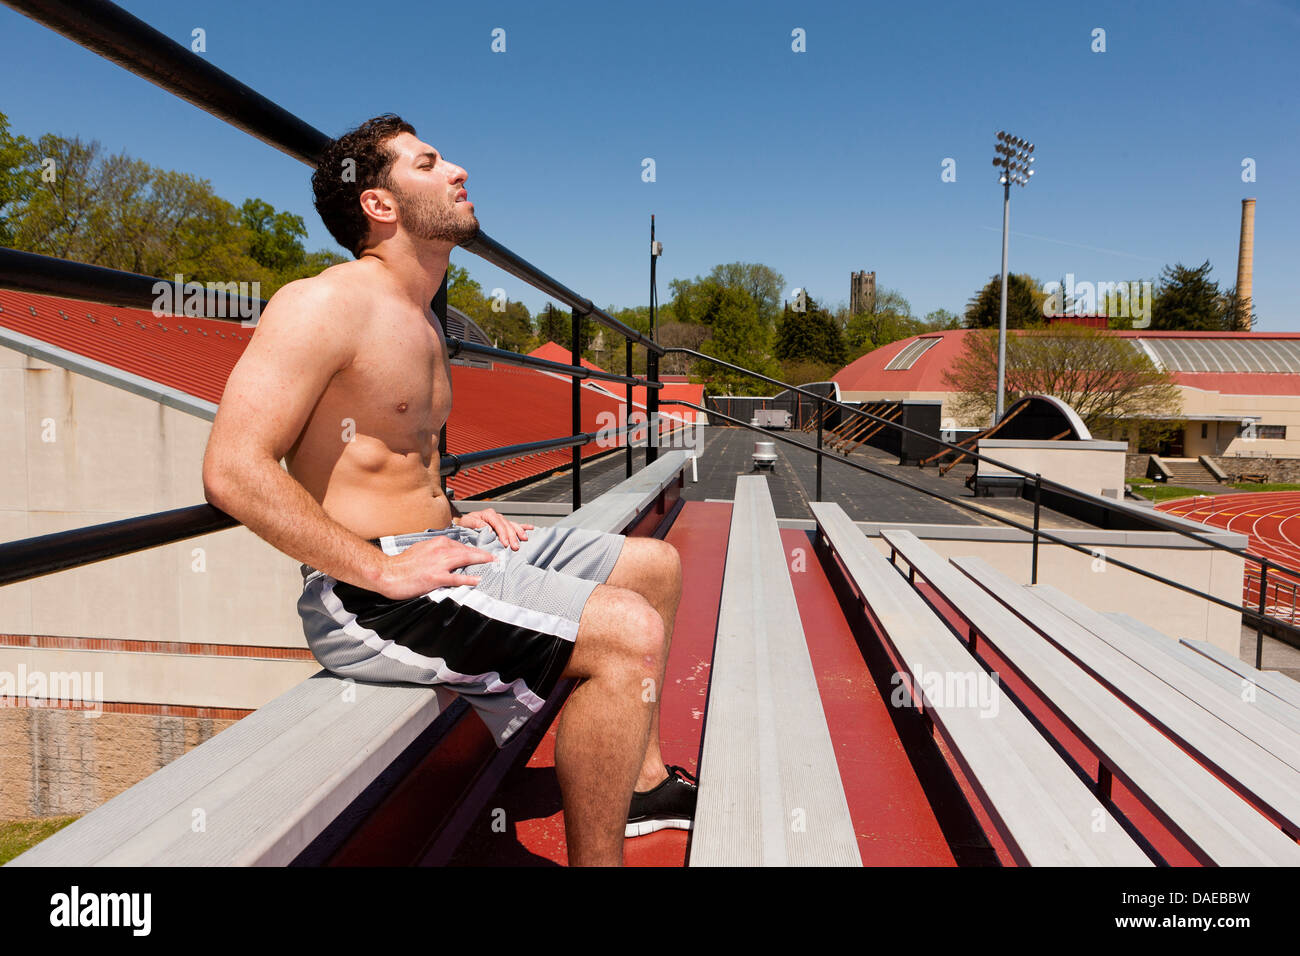 Young athlete taking a break on stadium seats - Stock Image